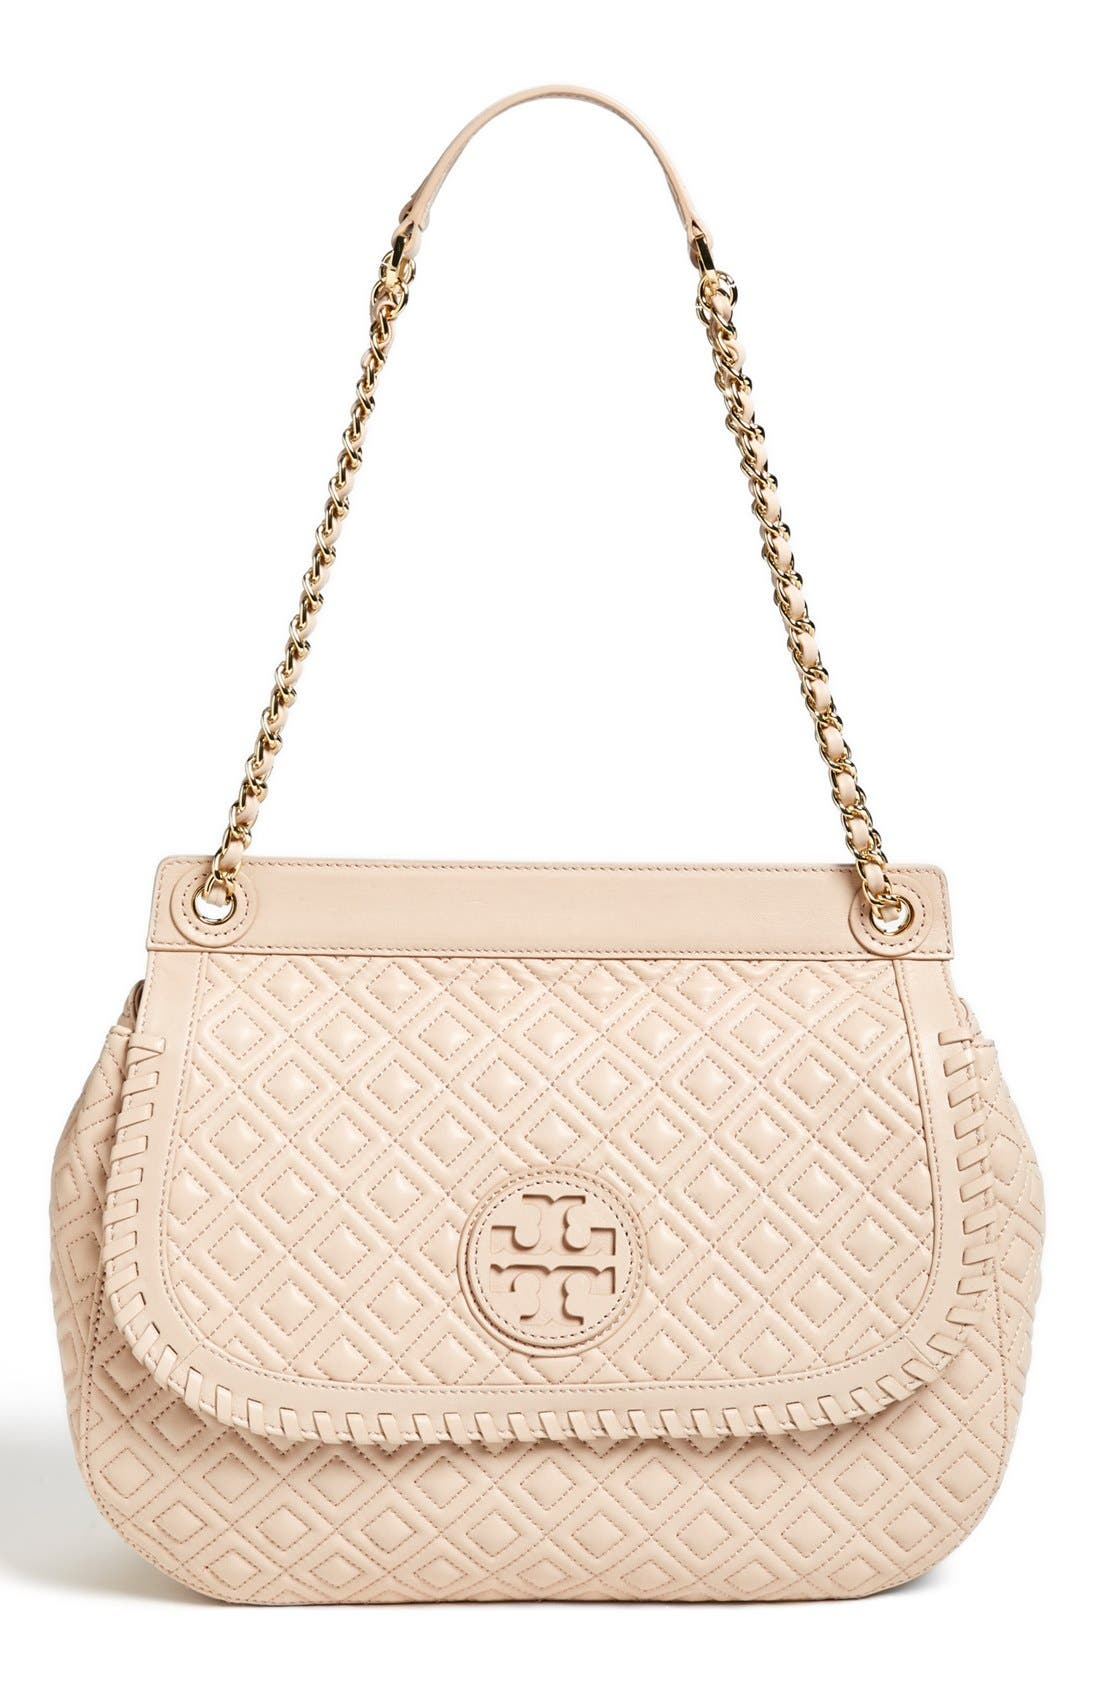 Alternate Image 1 Selected - Tory Burch 'Marion' Quilted Convertible Shoulder Bag